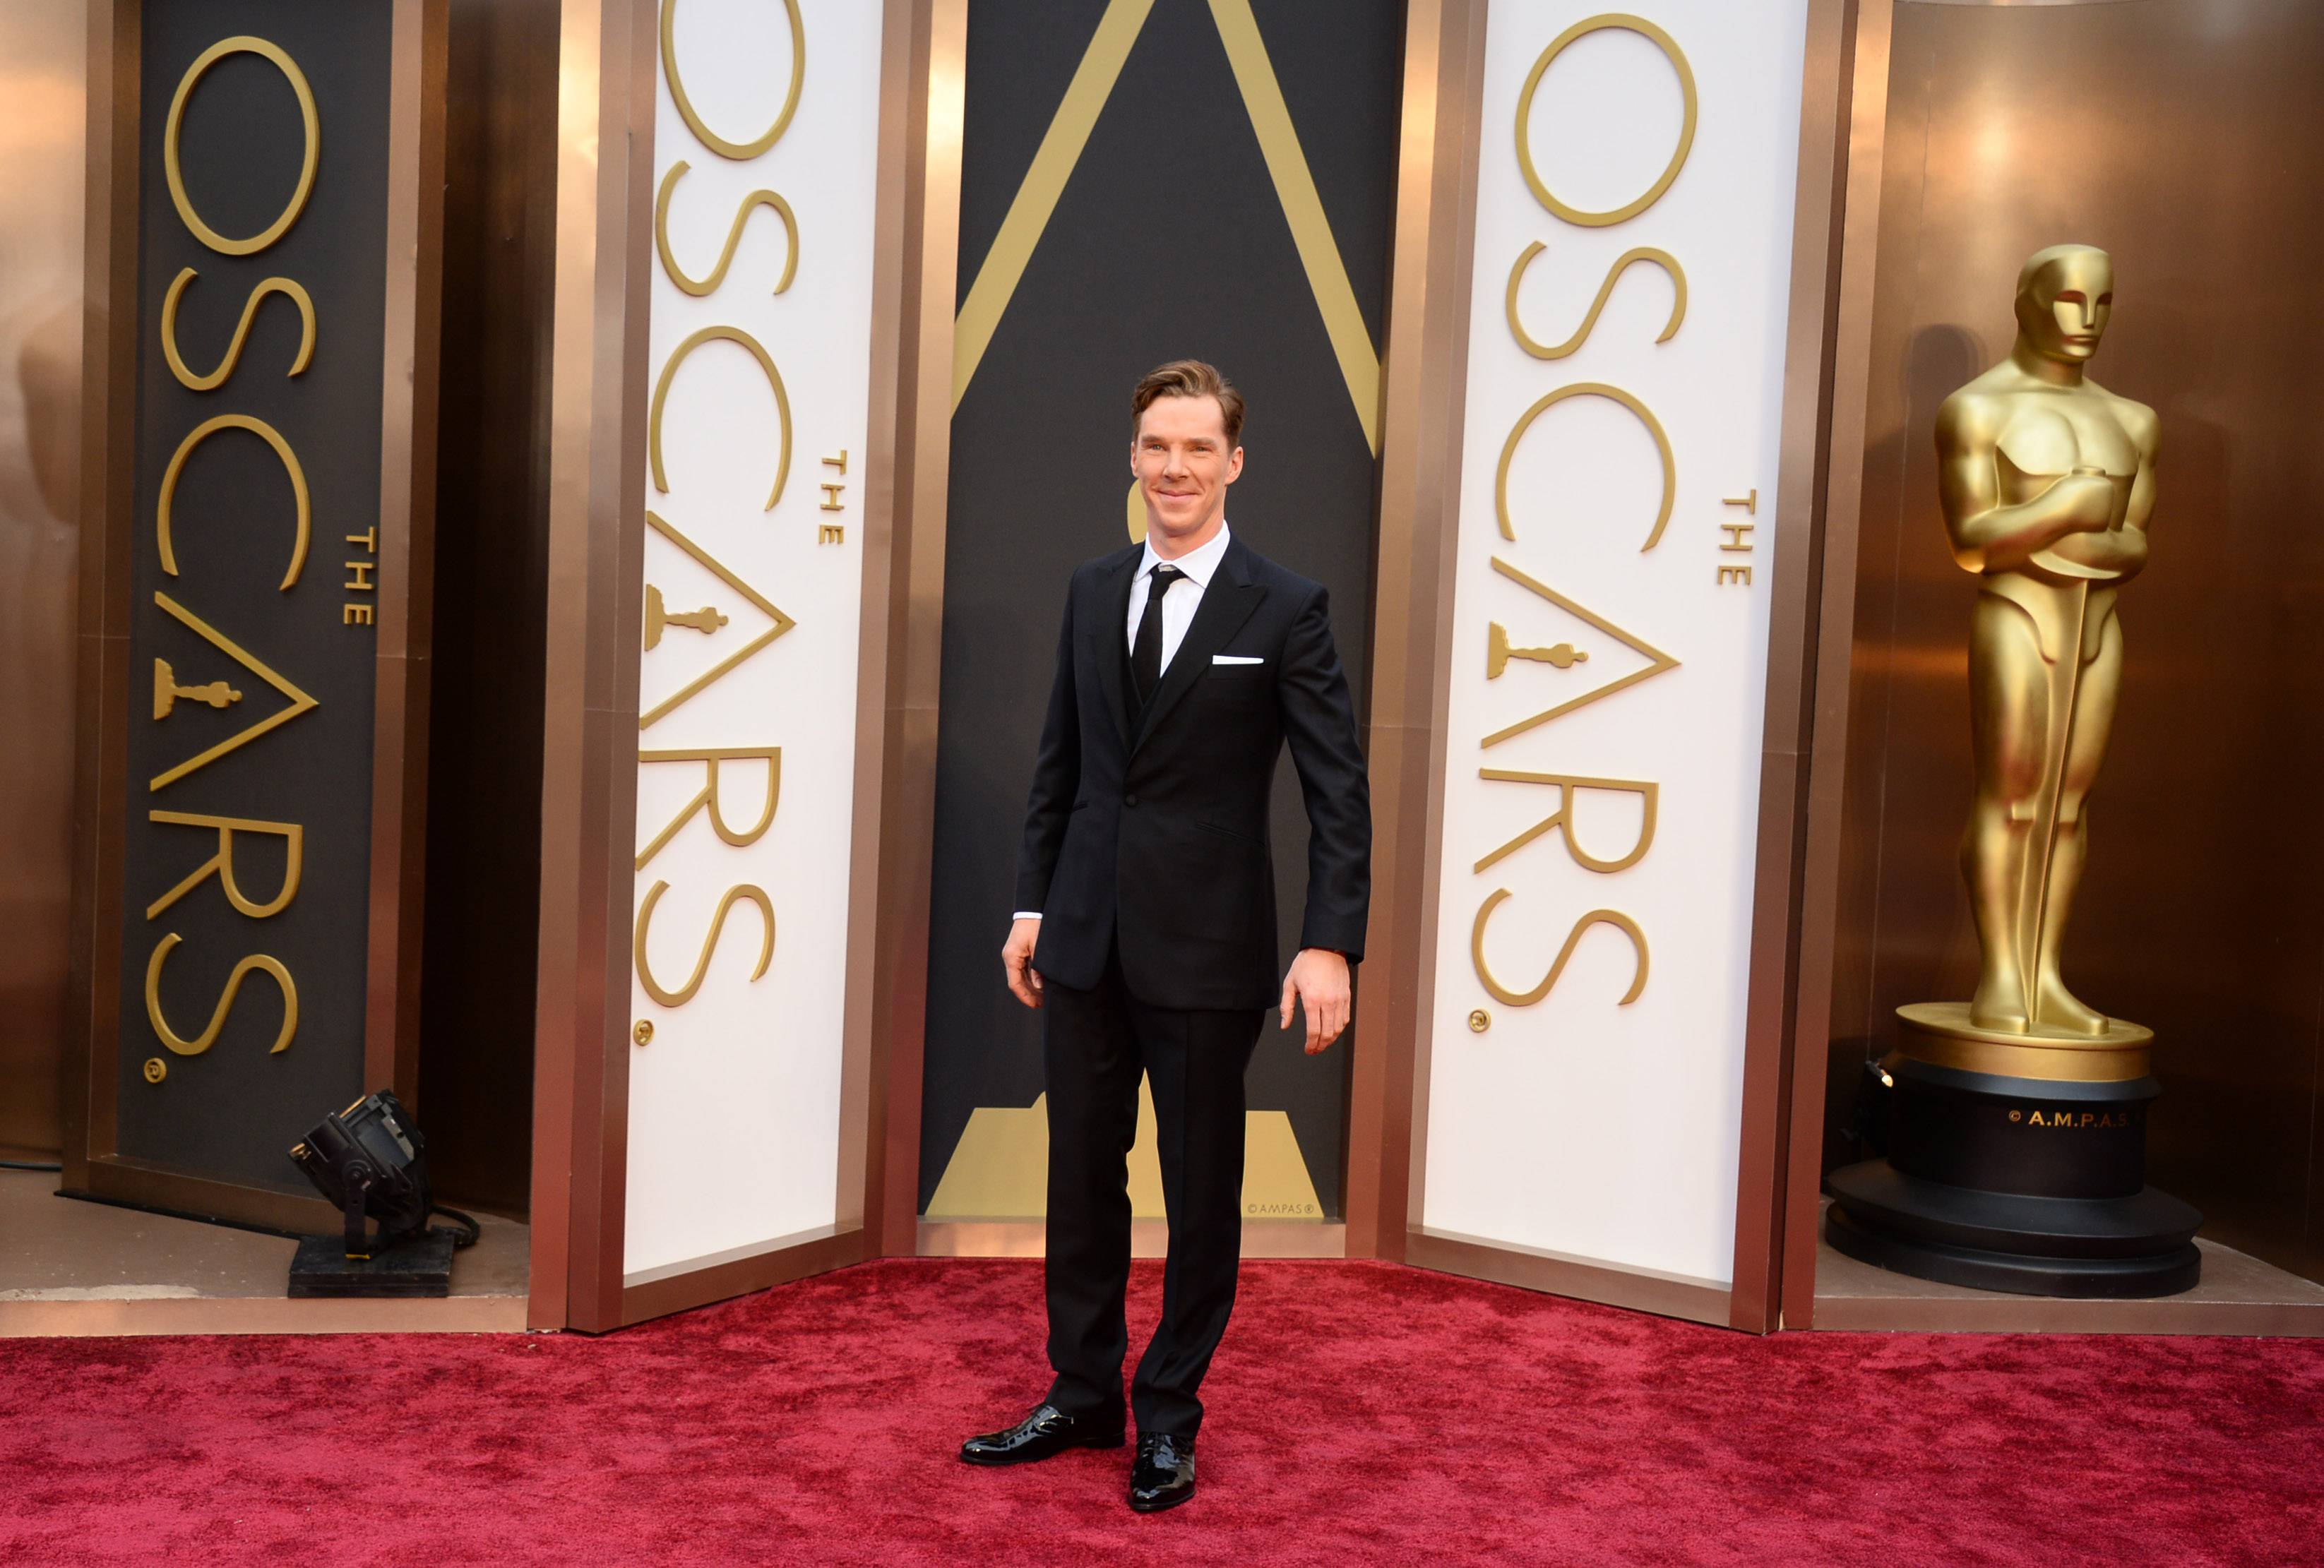 """Sherlock"" star Benedict Cumberbatch looks dapper decked out in his tux at the Oscars on Sunday."